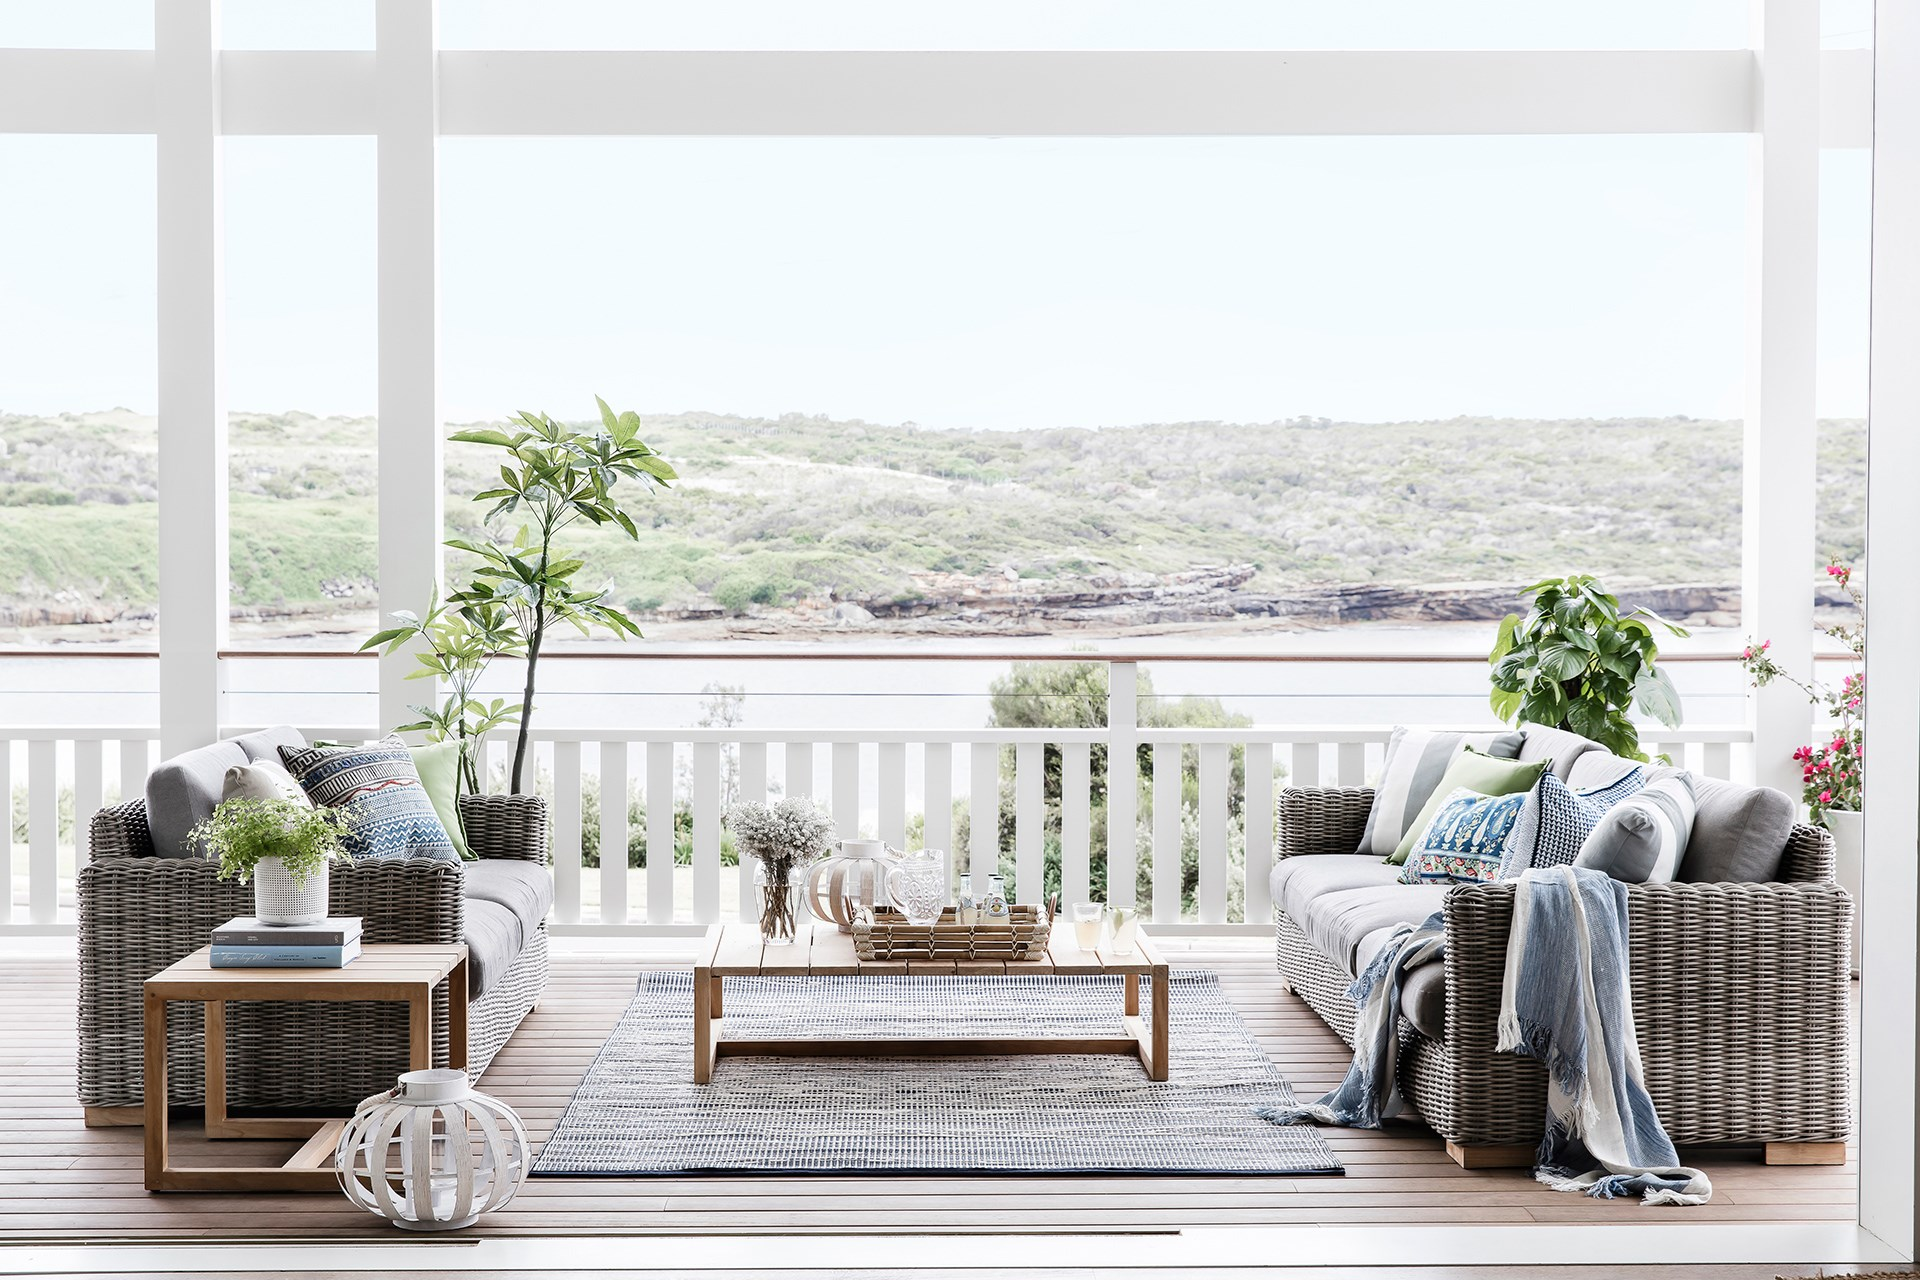 This [light-filled waterfront home](http://www.homestolove.com.au/coastal-style-an-airy-new-build-in-sydney-4577) embraces seamless indoor-outdoor living with an inviting veranda that takes advantage of the view. Photo: Maree Homer / Australian House & Garden